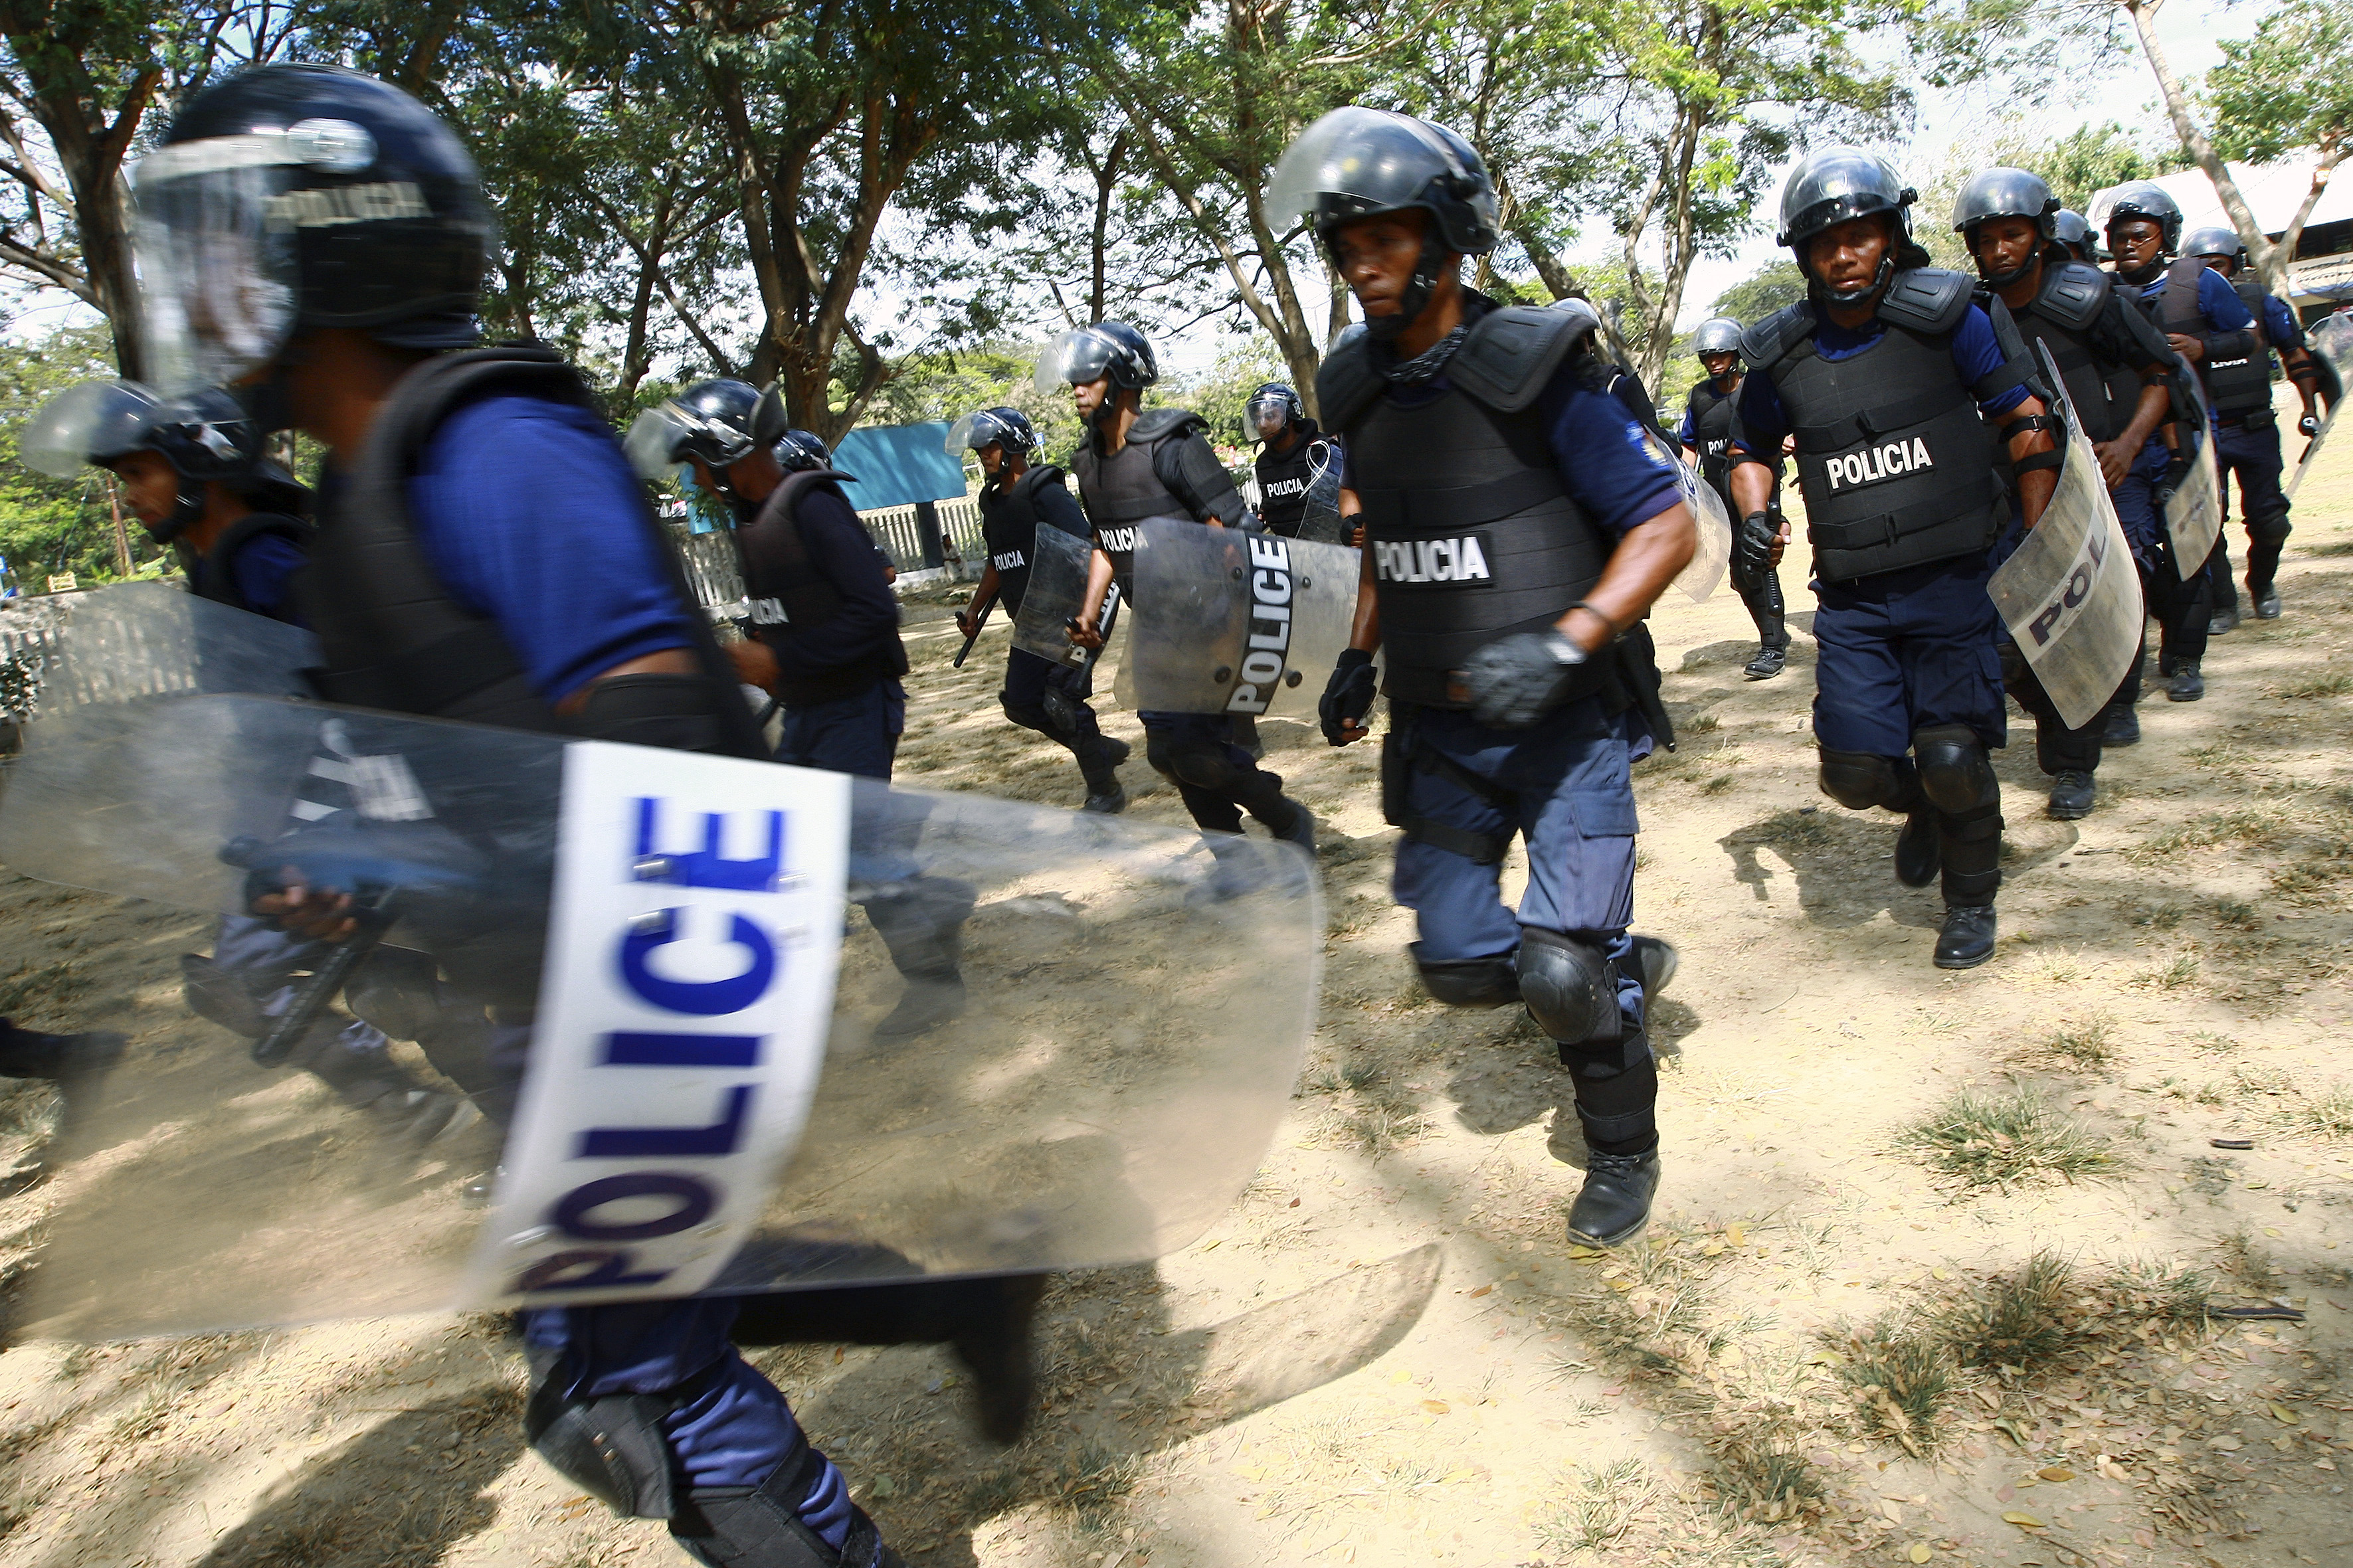 Timorese National Police officers perform a tactical demonstration exercise during a ceremony after a successful completion of a three-week training course facilitated by the United Nations Police component of the United Nations Integrated Mission in Timor-Leste.